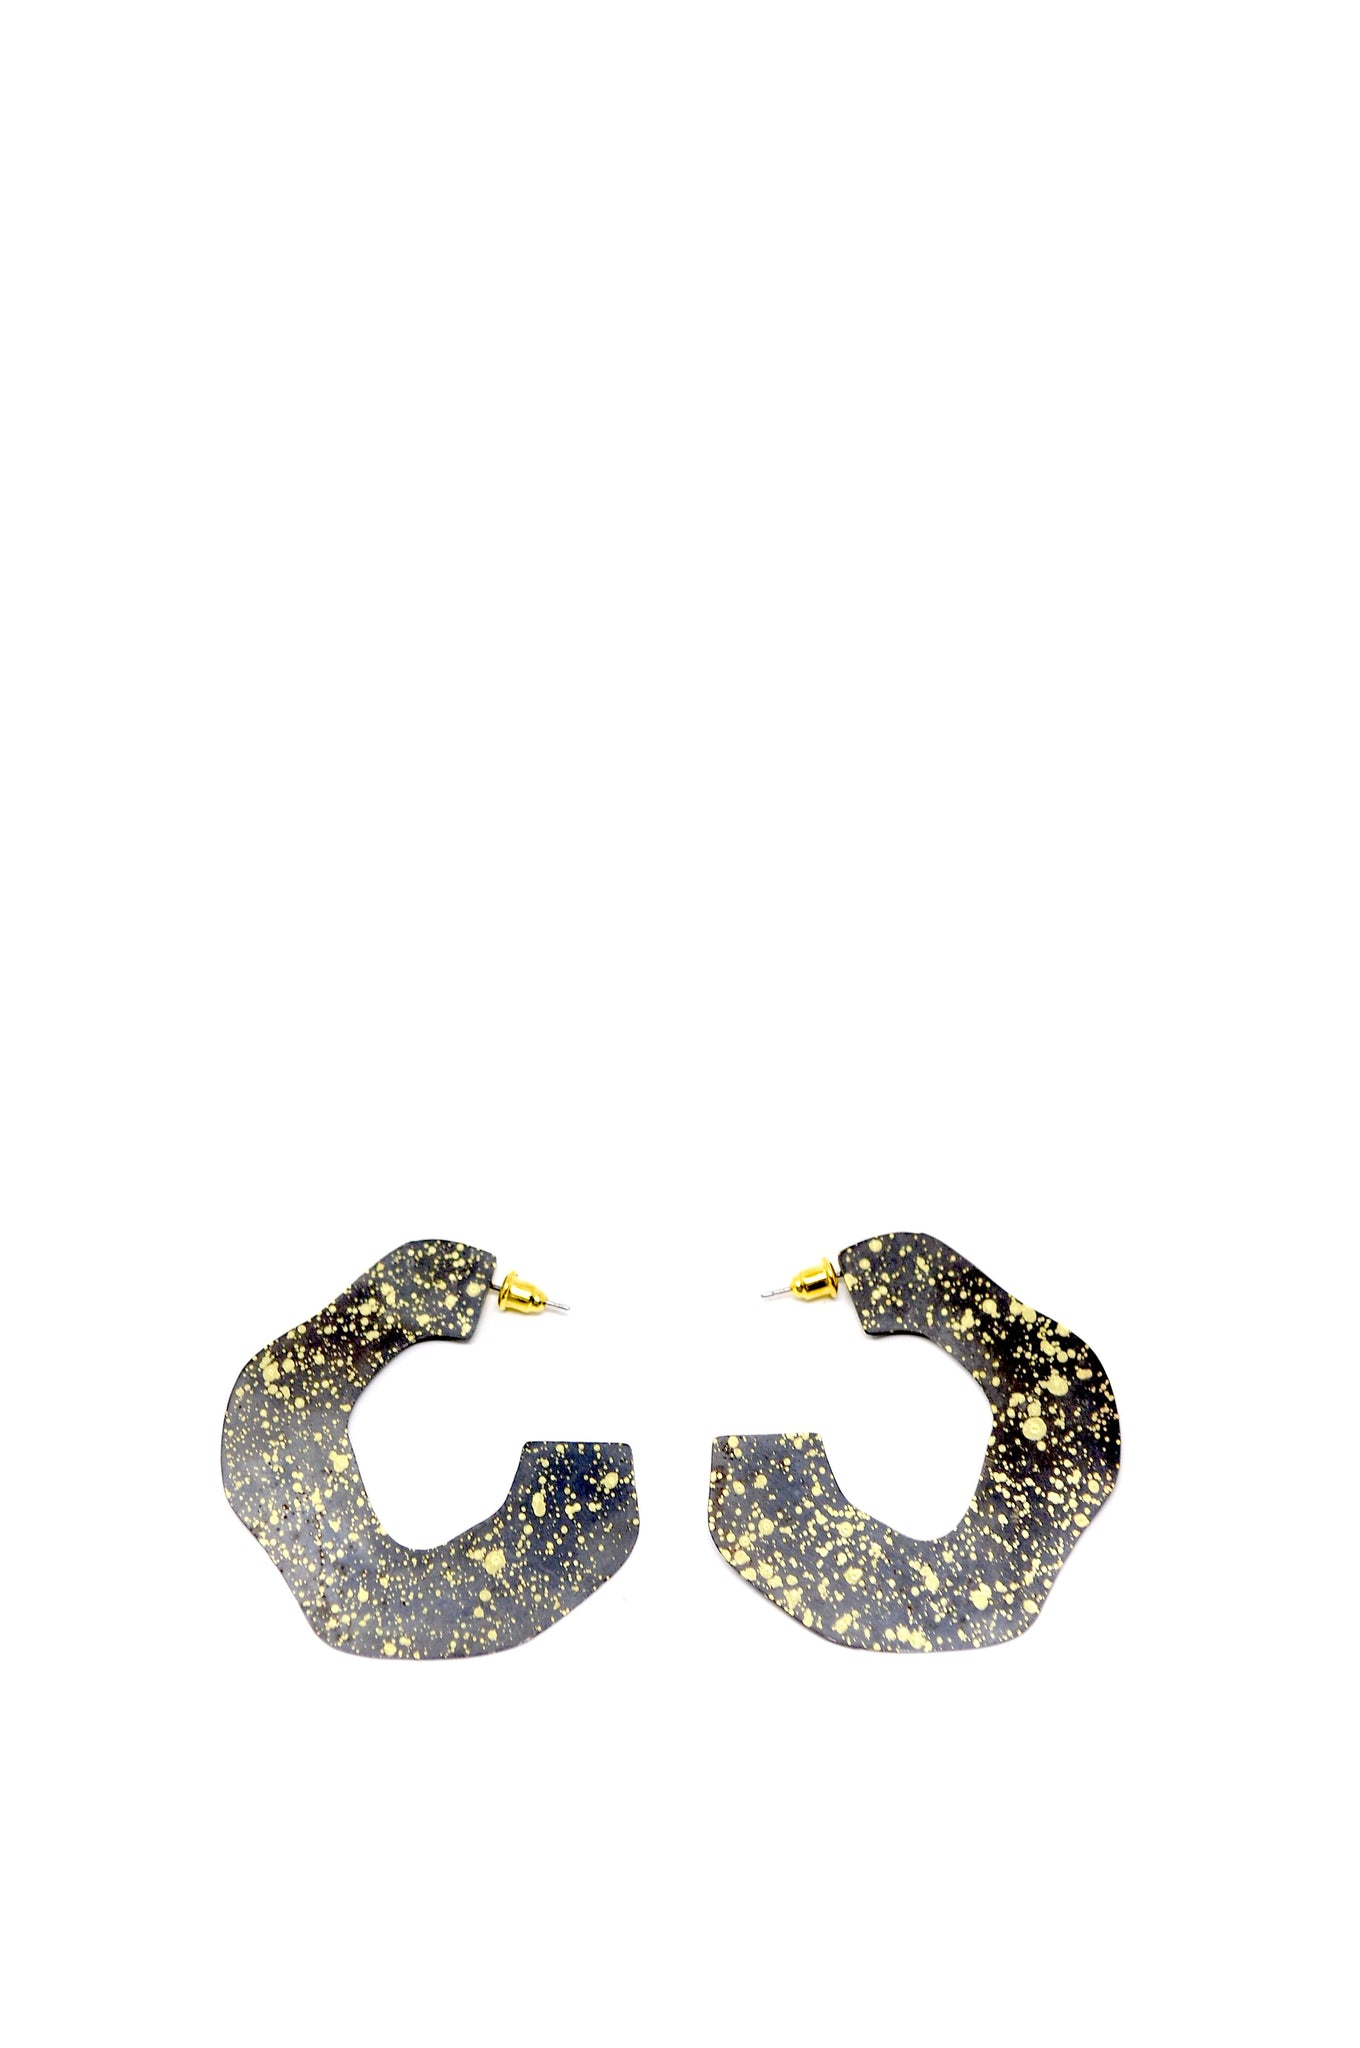 Sibilia Gold and Black Mancha Hoops - - | ATELIER957 | shop sale items from hand-picked, statement clothing, shoe, and accessory collections up to 70 percent off